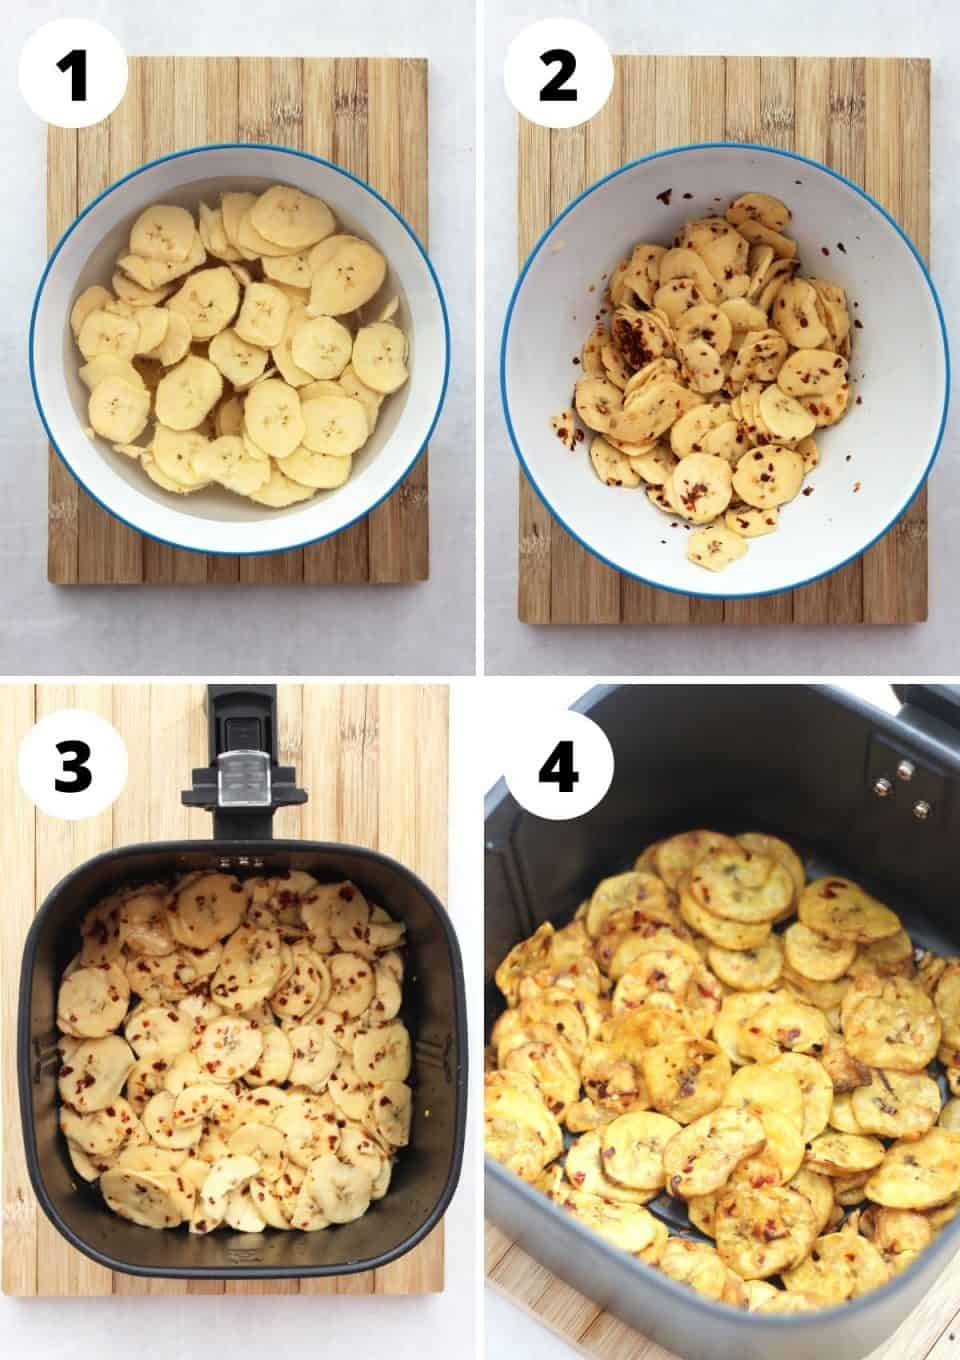 Four step by step photos to show how to make plantain chips.